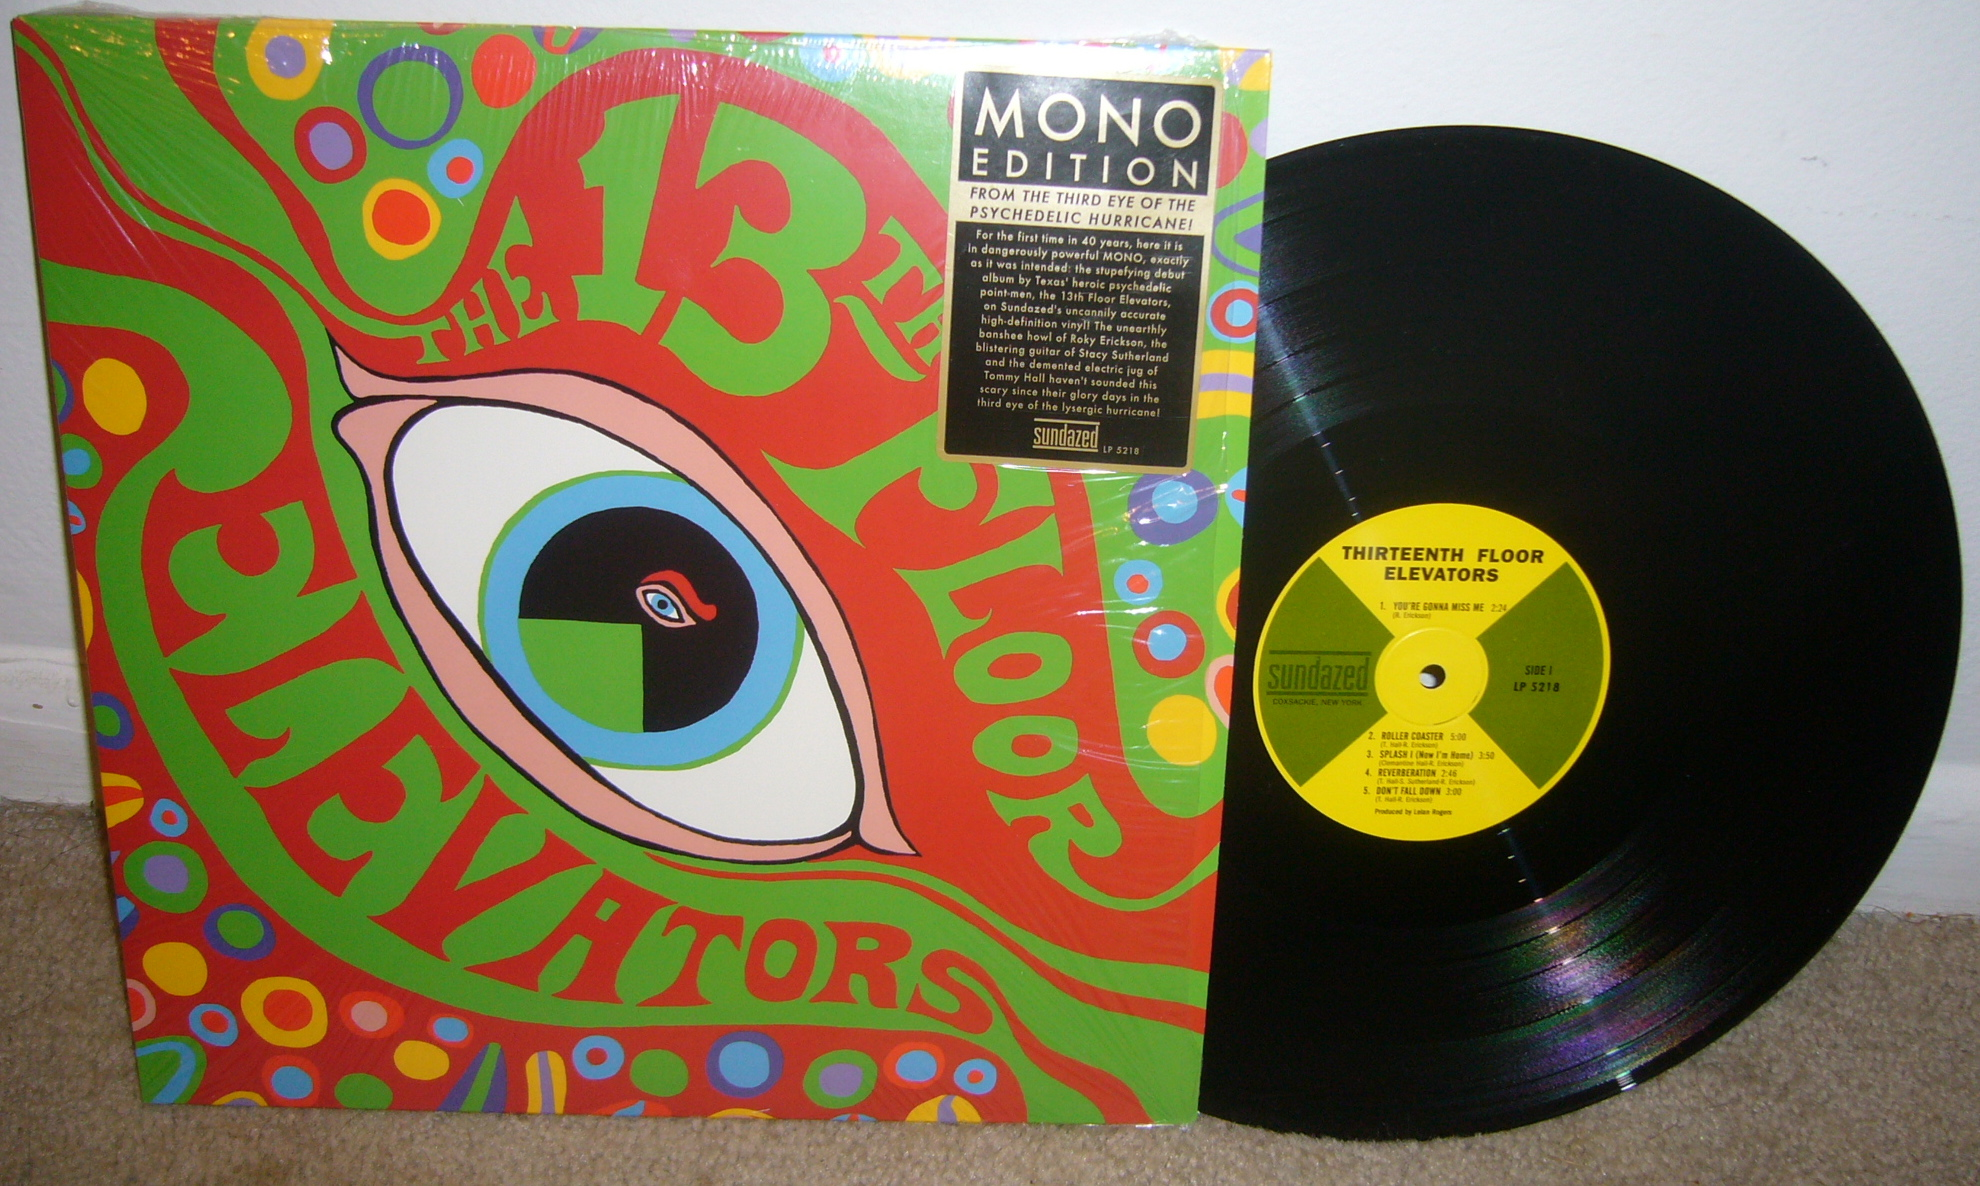 High Quality ... 13th Floor Elevators. Psychedelic Sounds Of The ...